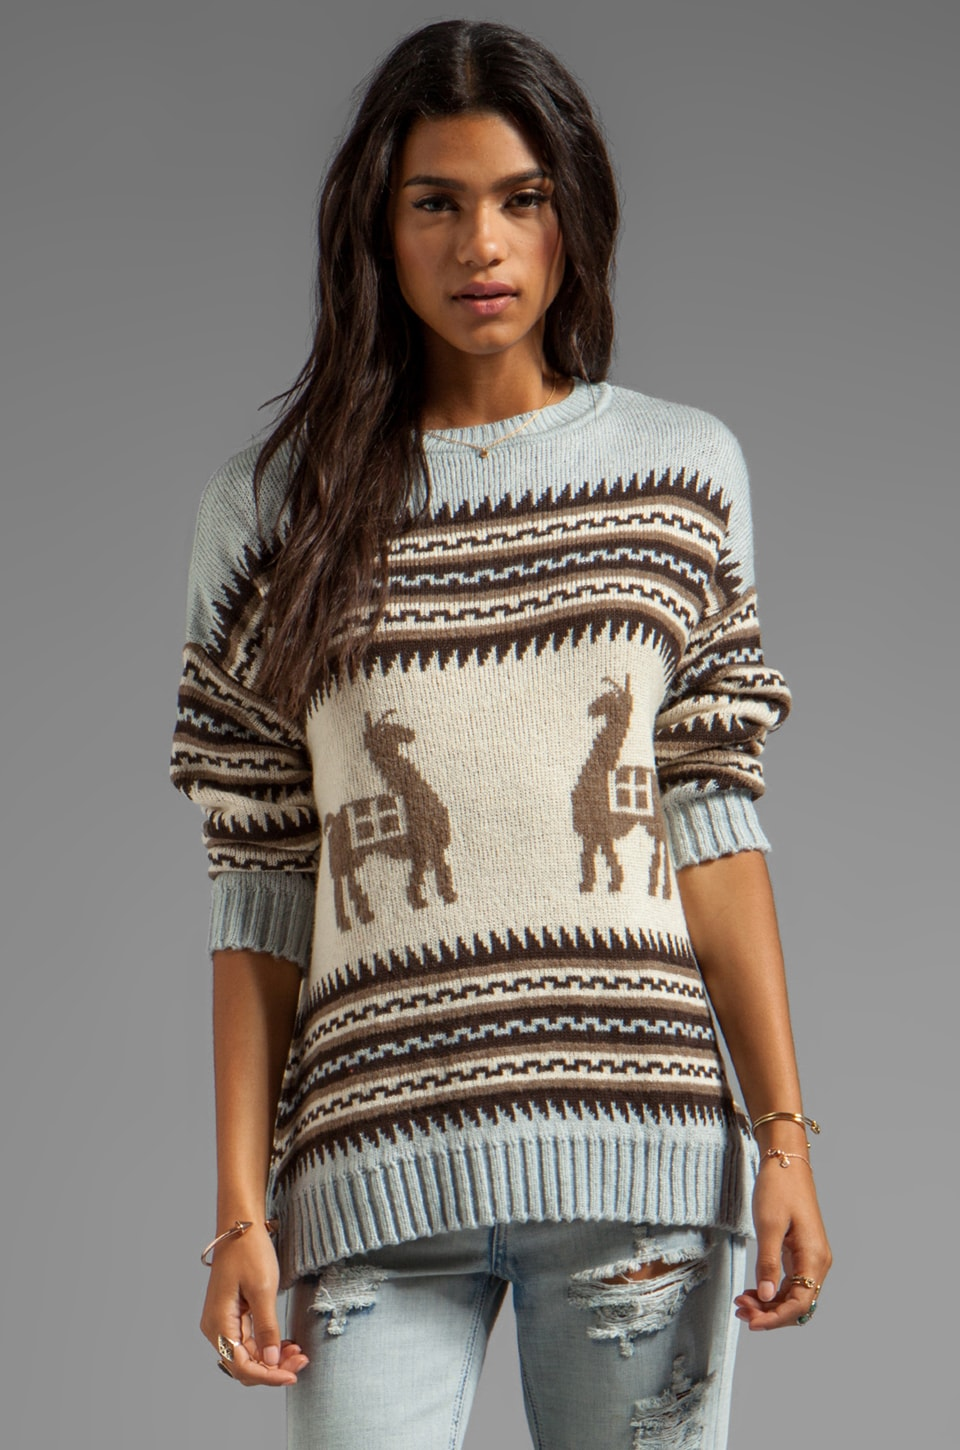 Jen's Pirate Booty Sun Valley Sweater in Storm Llama